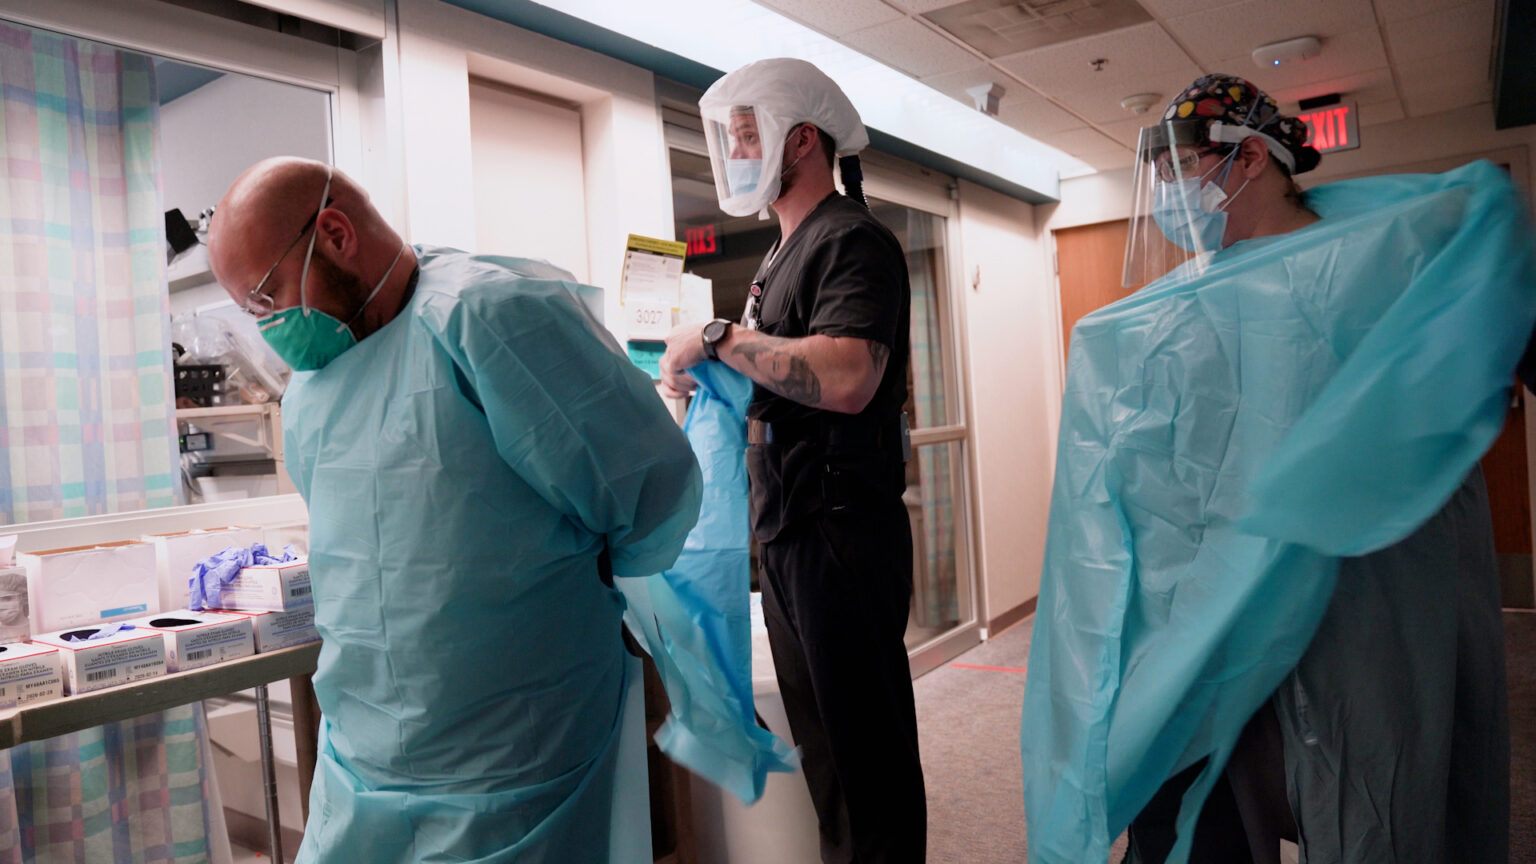 Three hospital workers put on personal protective equipment including gowns, masks and face shields in the hallway of an intensive care unit.